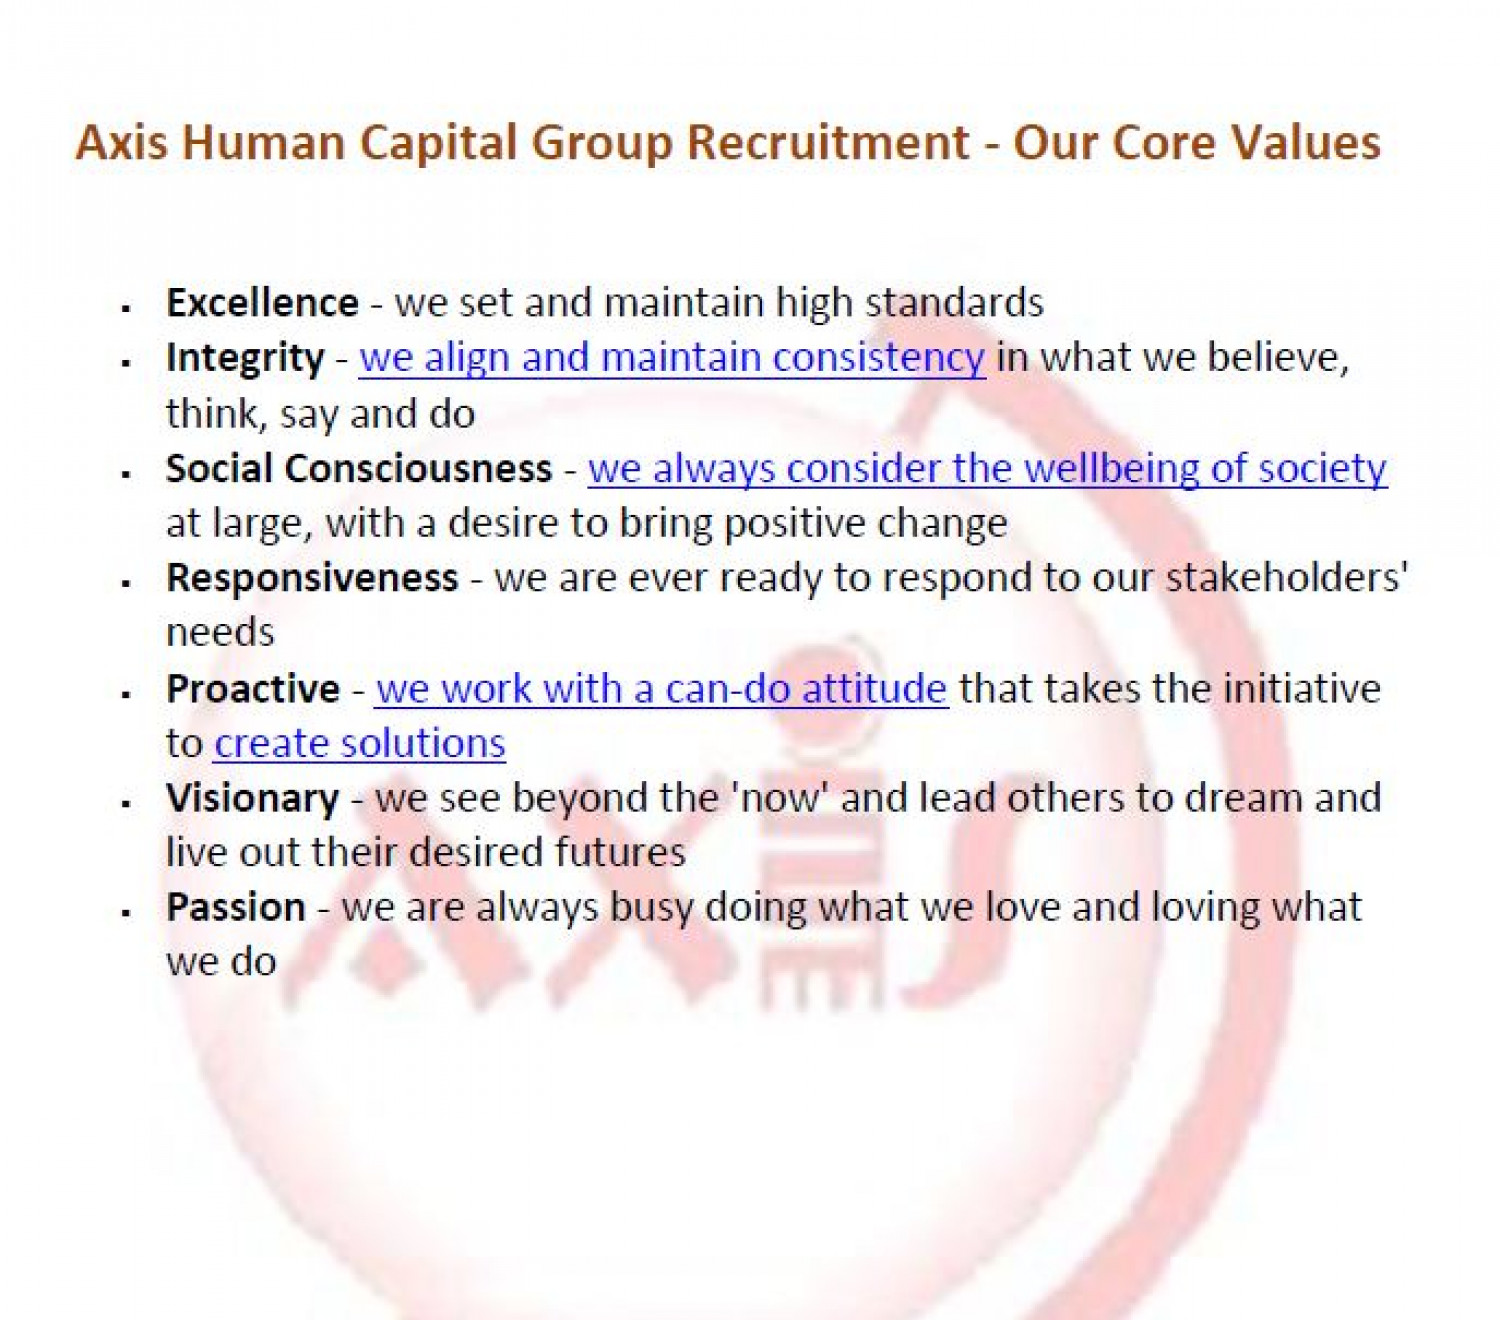 Axis Human Capital Group Recruitment - Our Core Values Infographic